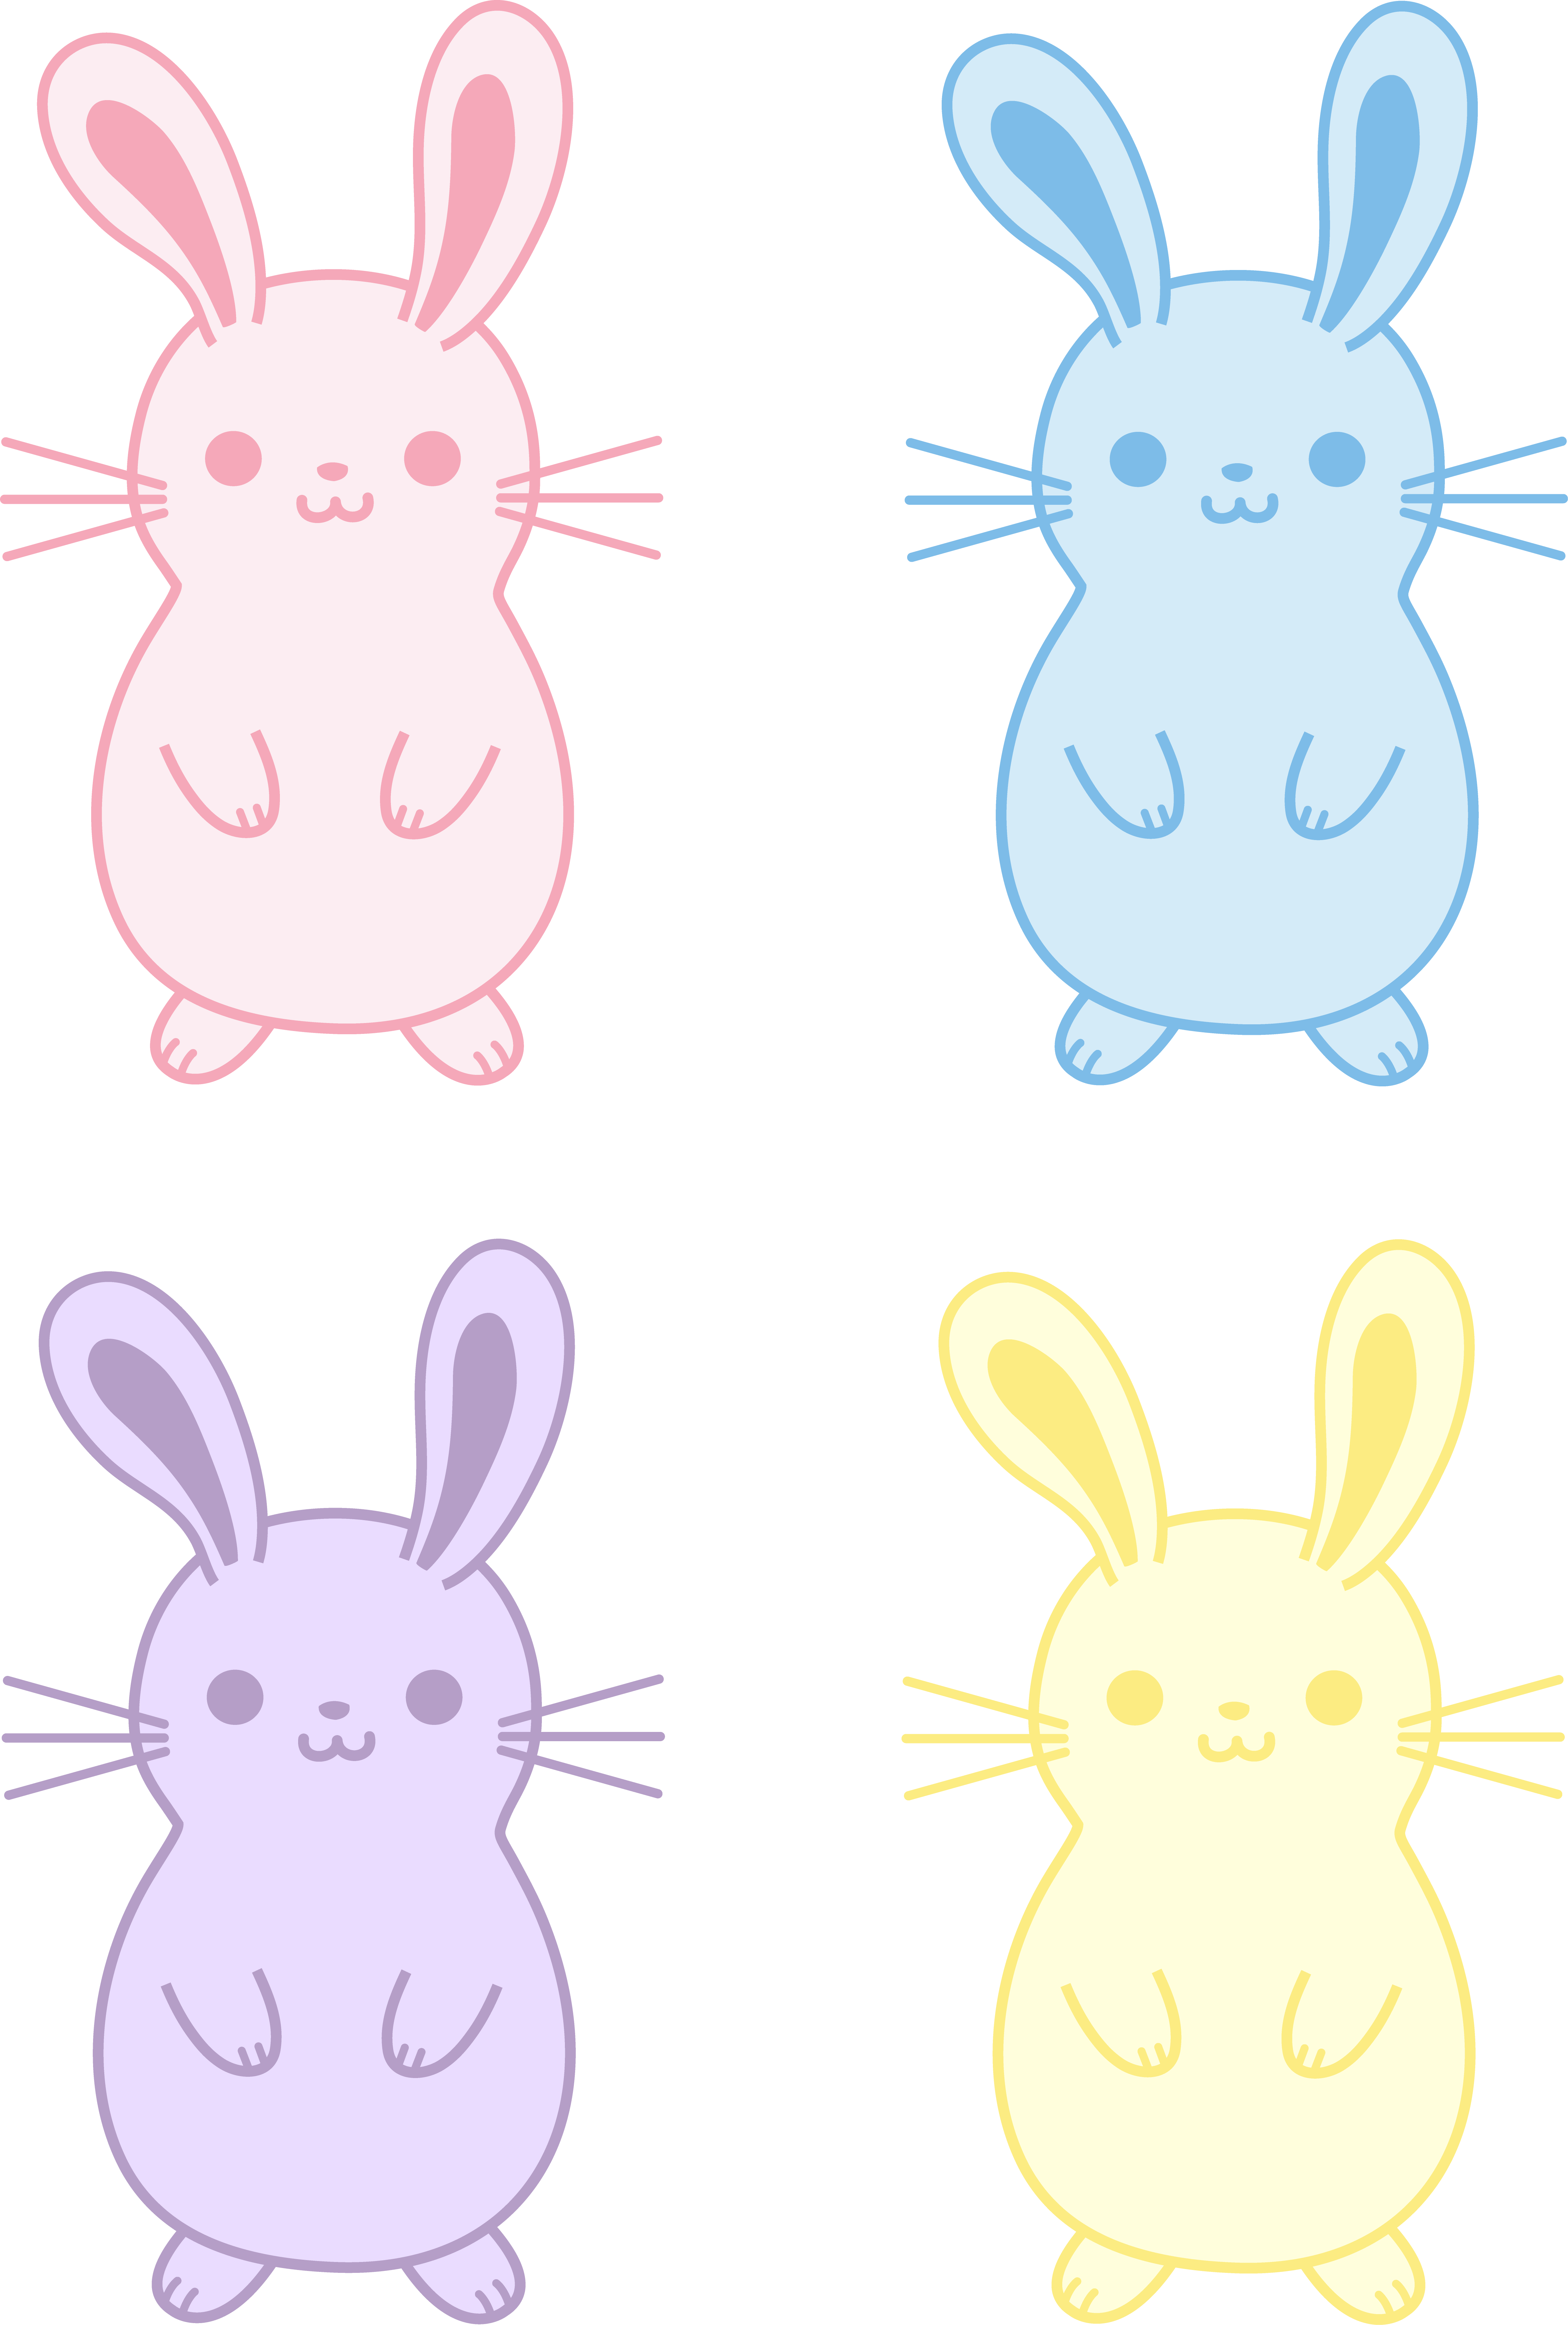 Drawn bunny hand drawn Cute Easter Colorful of Four